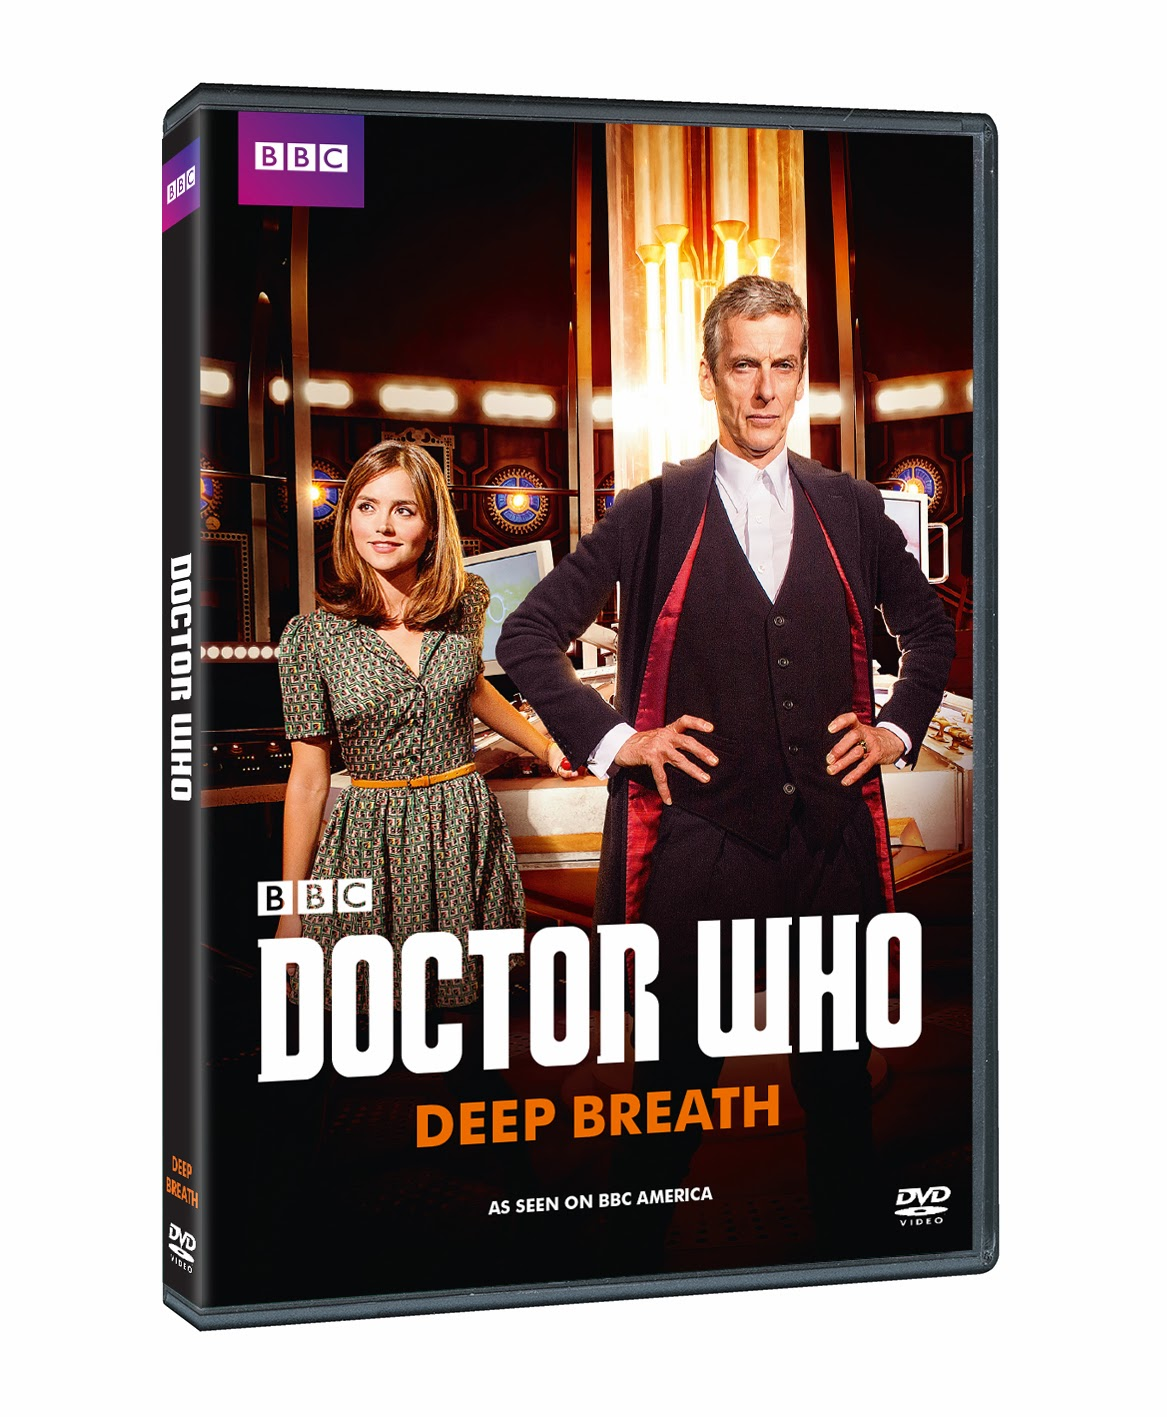 DVD Review - Doctor Who: Deep Breath